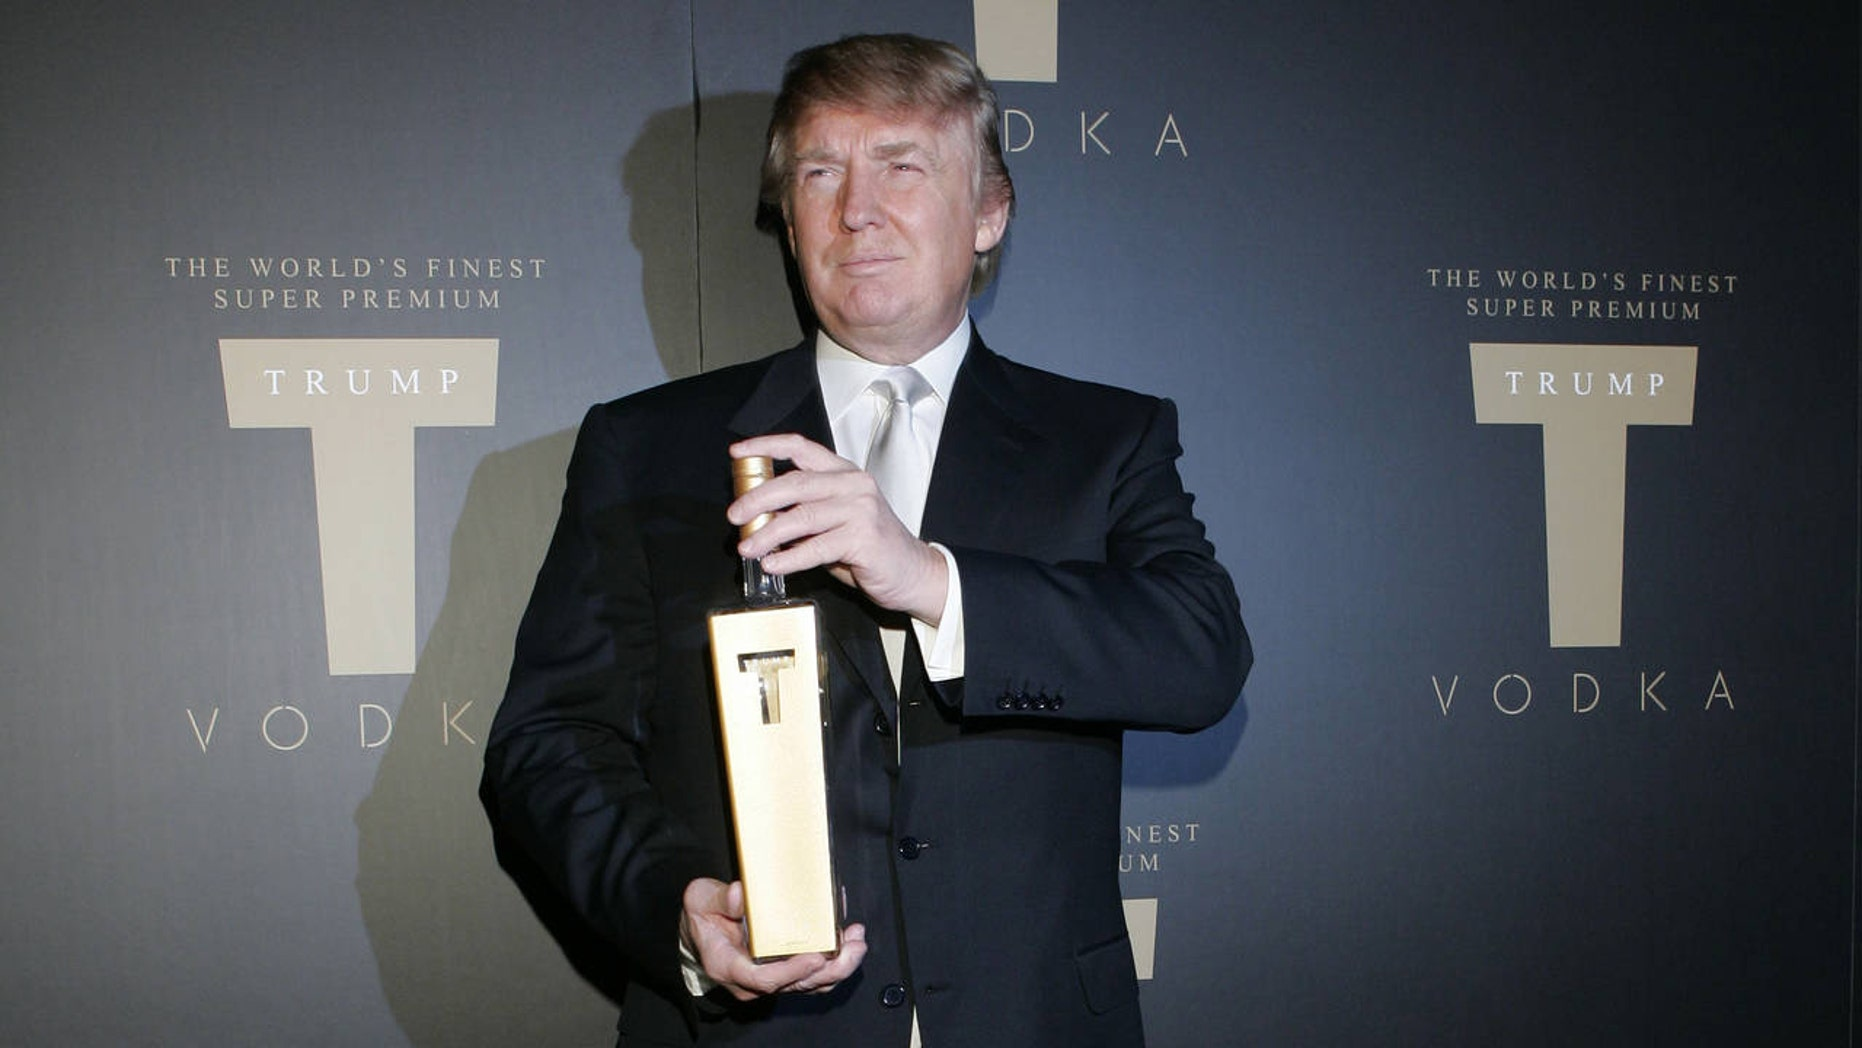 Donald Trump poses with a bottle of liquor from his now defunct vodka line.